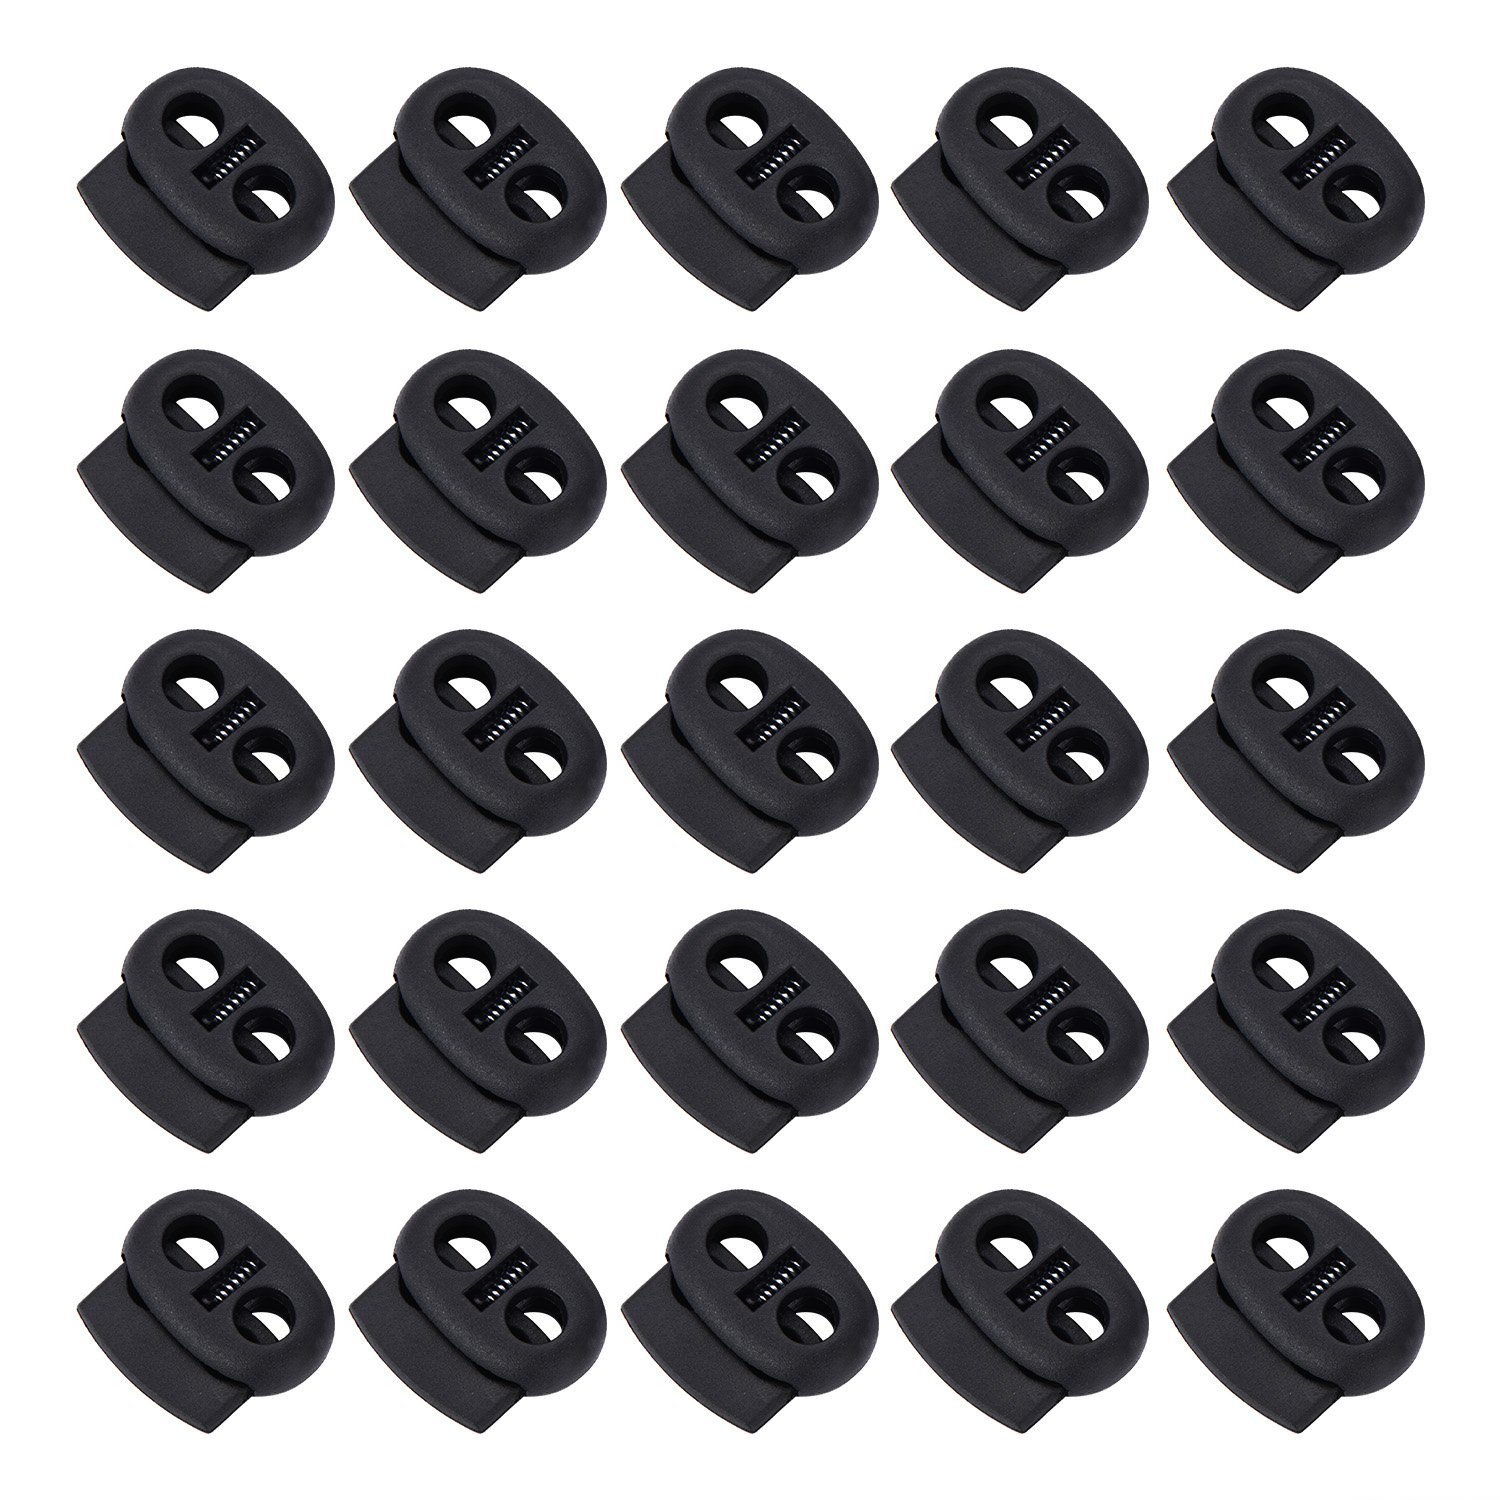 BBTO 50 Pieces Spring Cord Locks Double Holes Toggle Stoppers Sliders Oval Cord End Fastener, Black